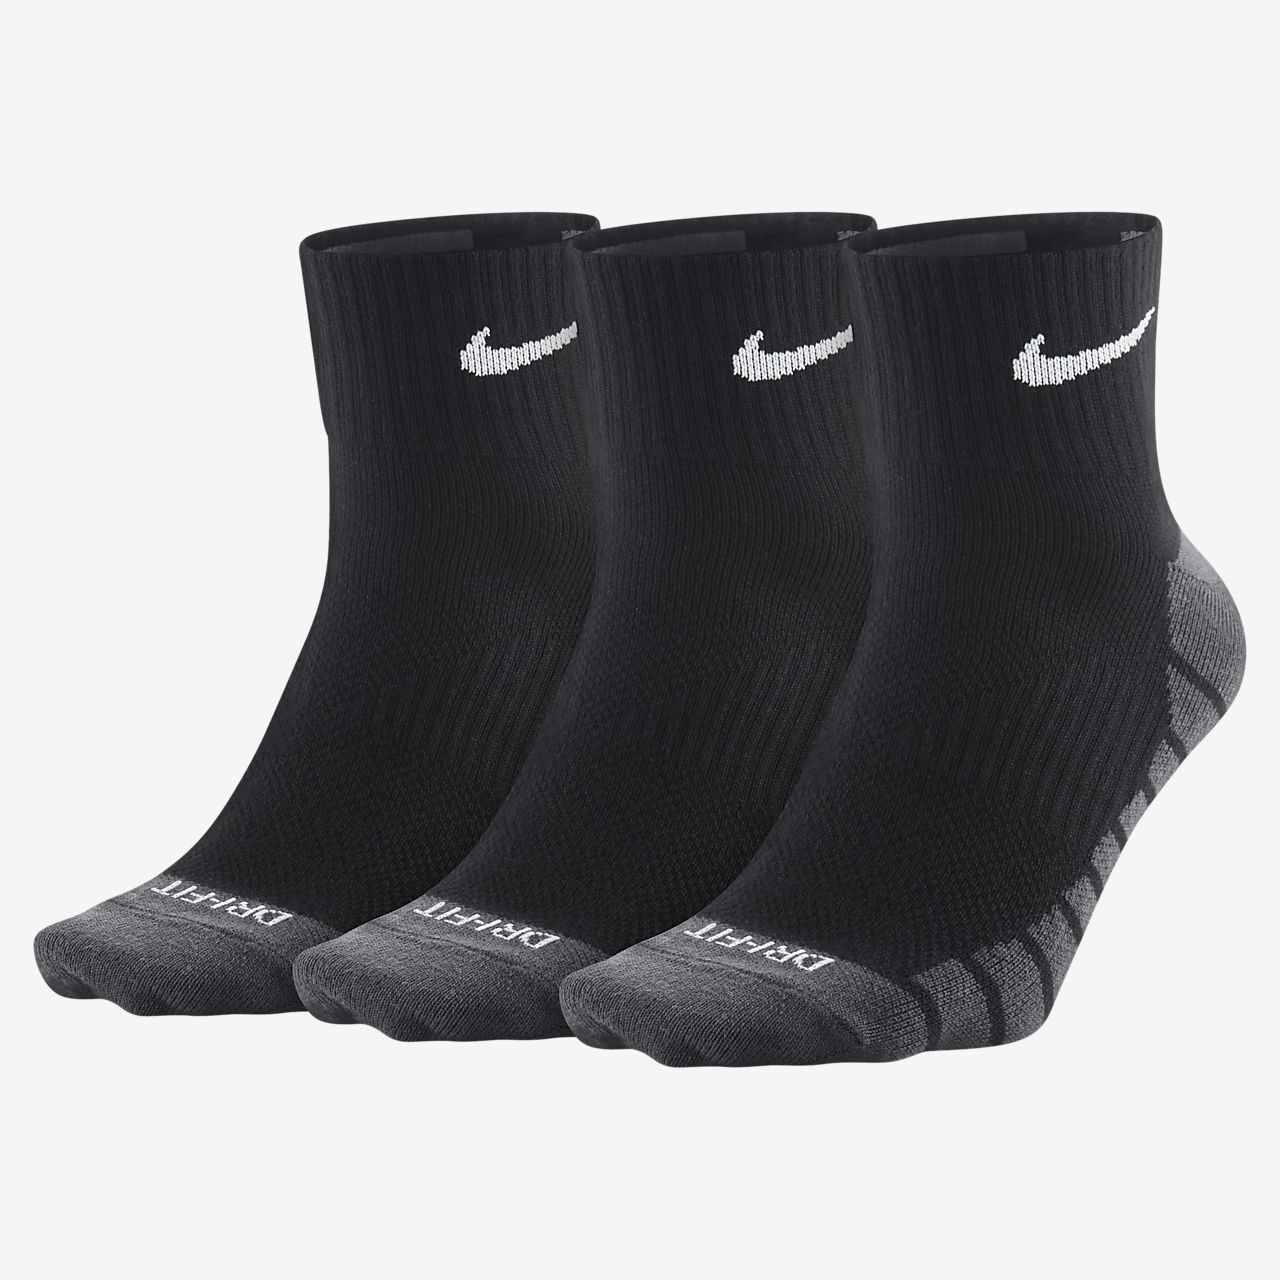 Nike Dry Lightweight Quarter Training Socks (3 Pair)